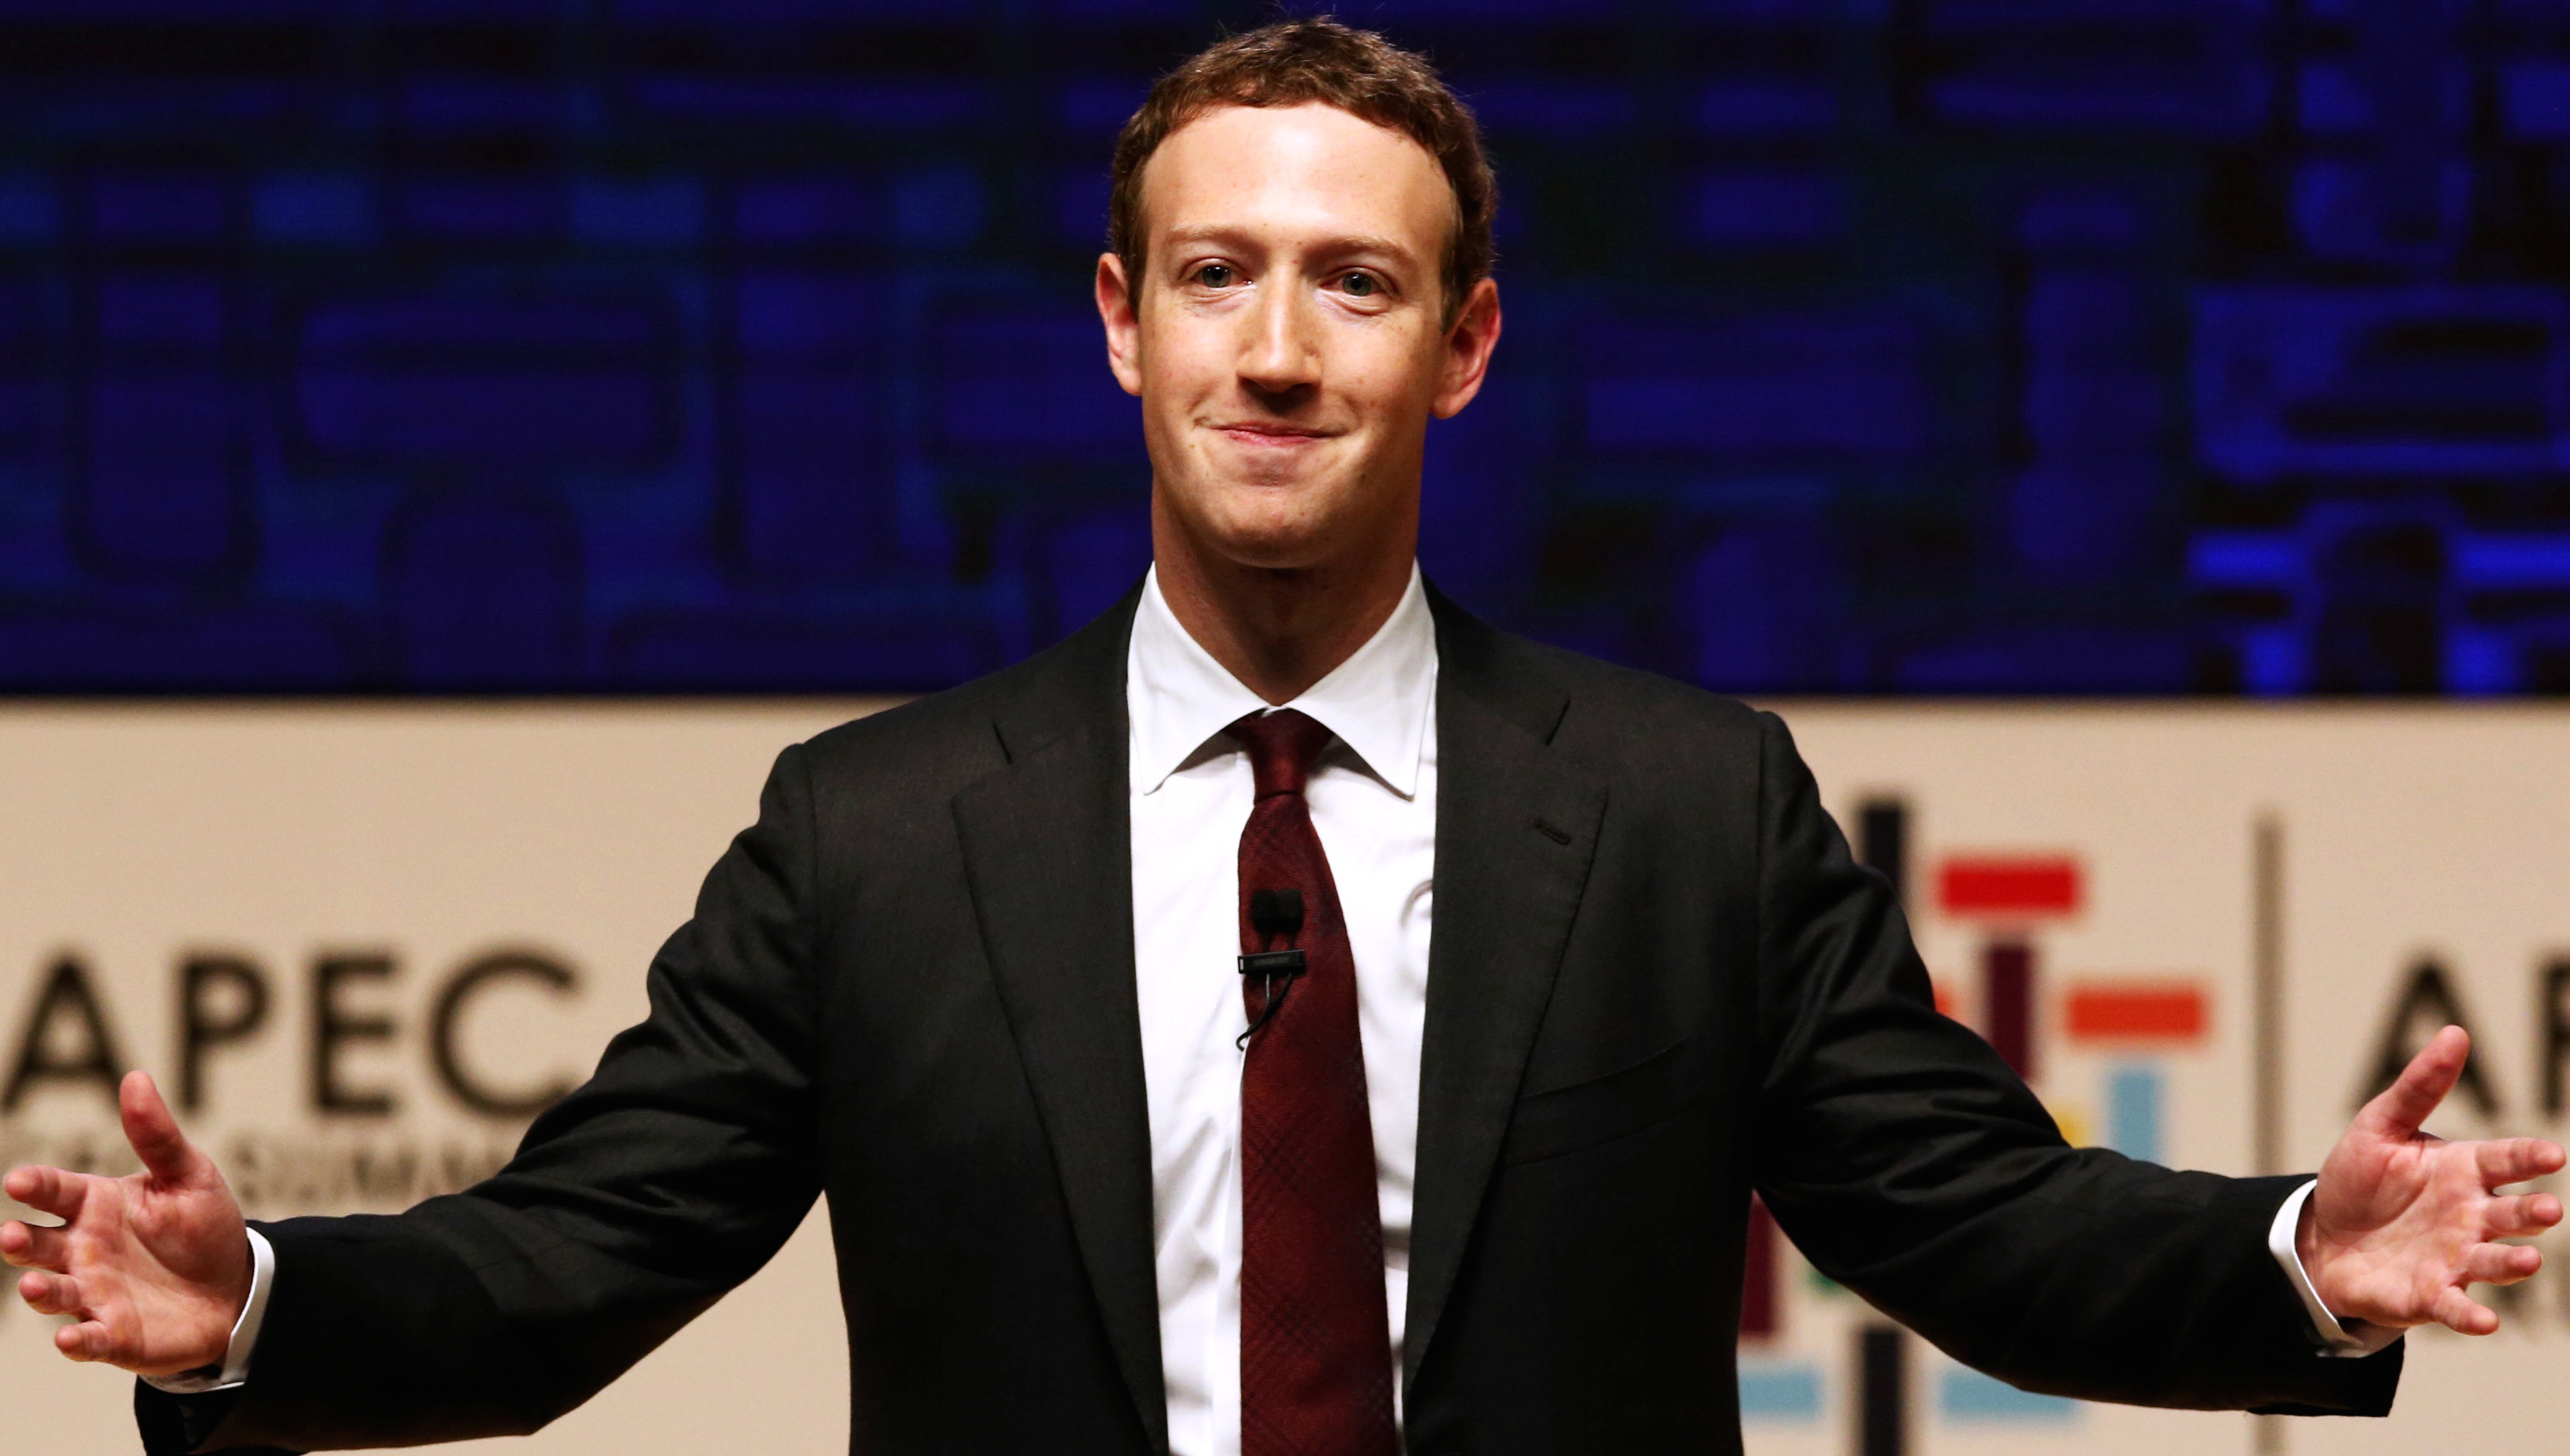 Facebook CEO Mark Zuckerberg gestures while addressing the audience during a meeting of the APEC (Asia-Pacific Economic Cooperation) Ceo Summit in Lima, Peru, November 19, 2016. REUTERS/Mariana Bazo  - RTSSDLW